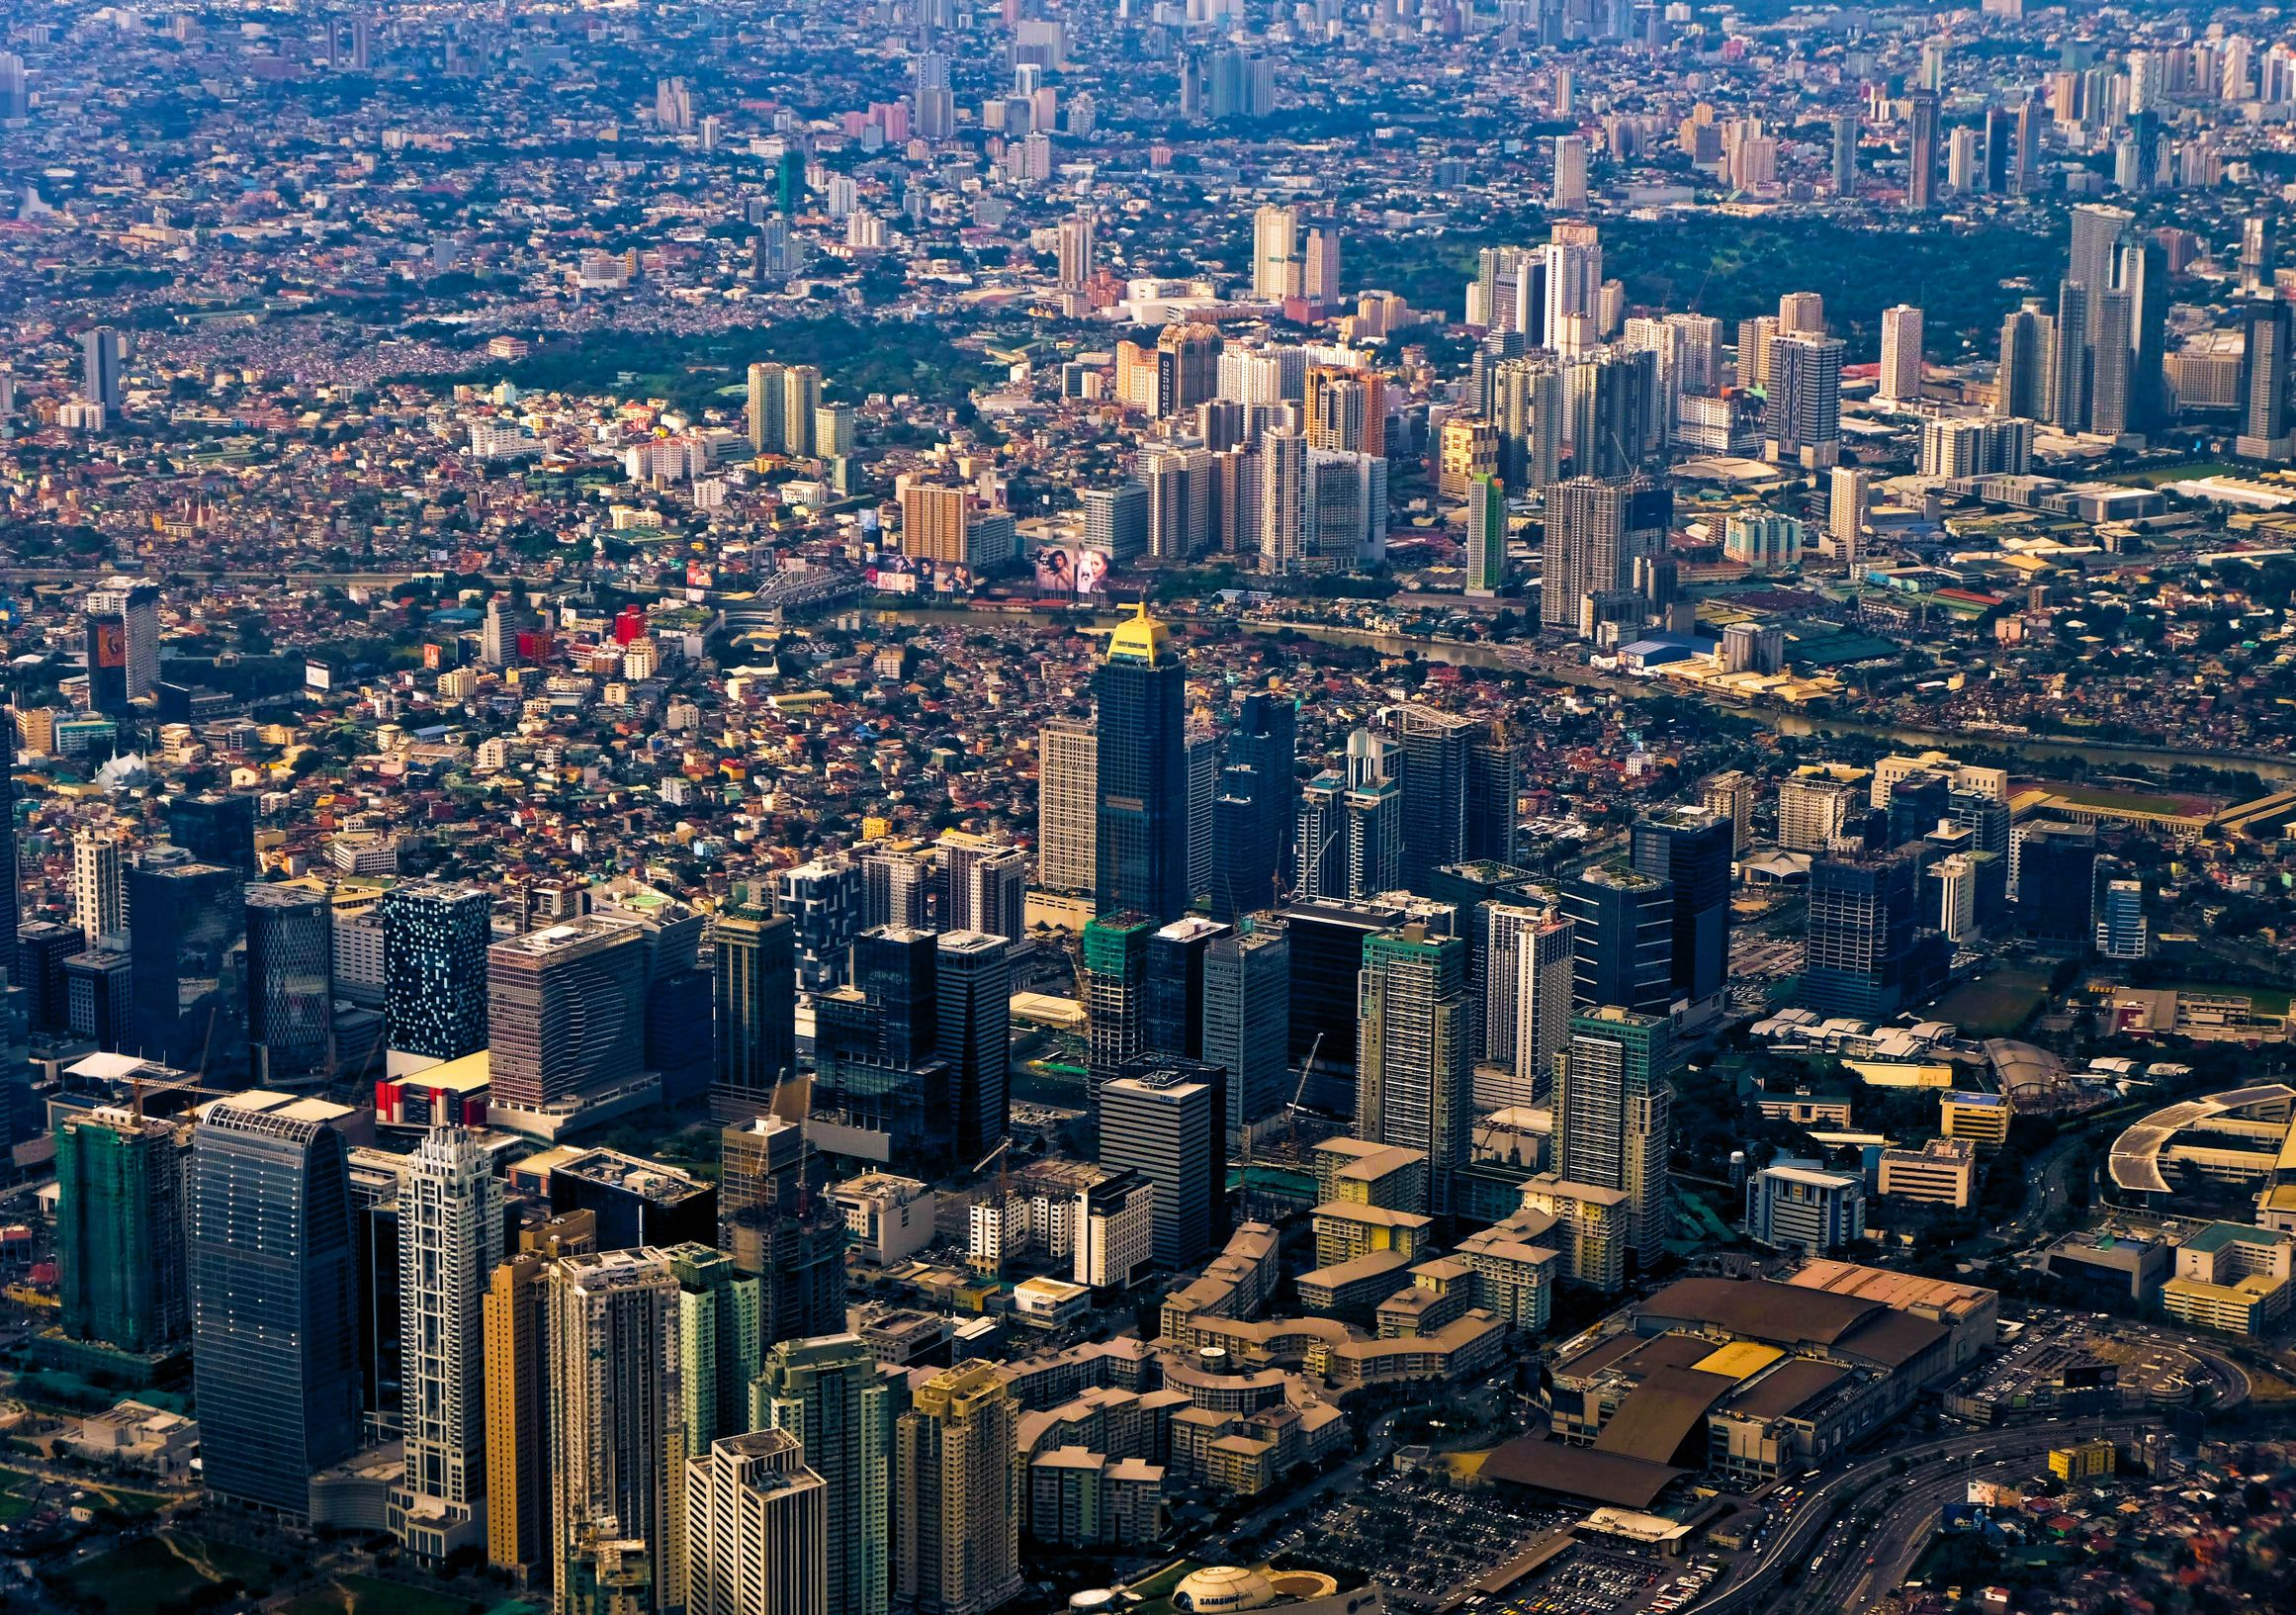 Aerial view of a large and sprawling city with numerous high rise buildings